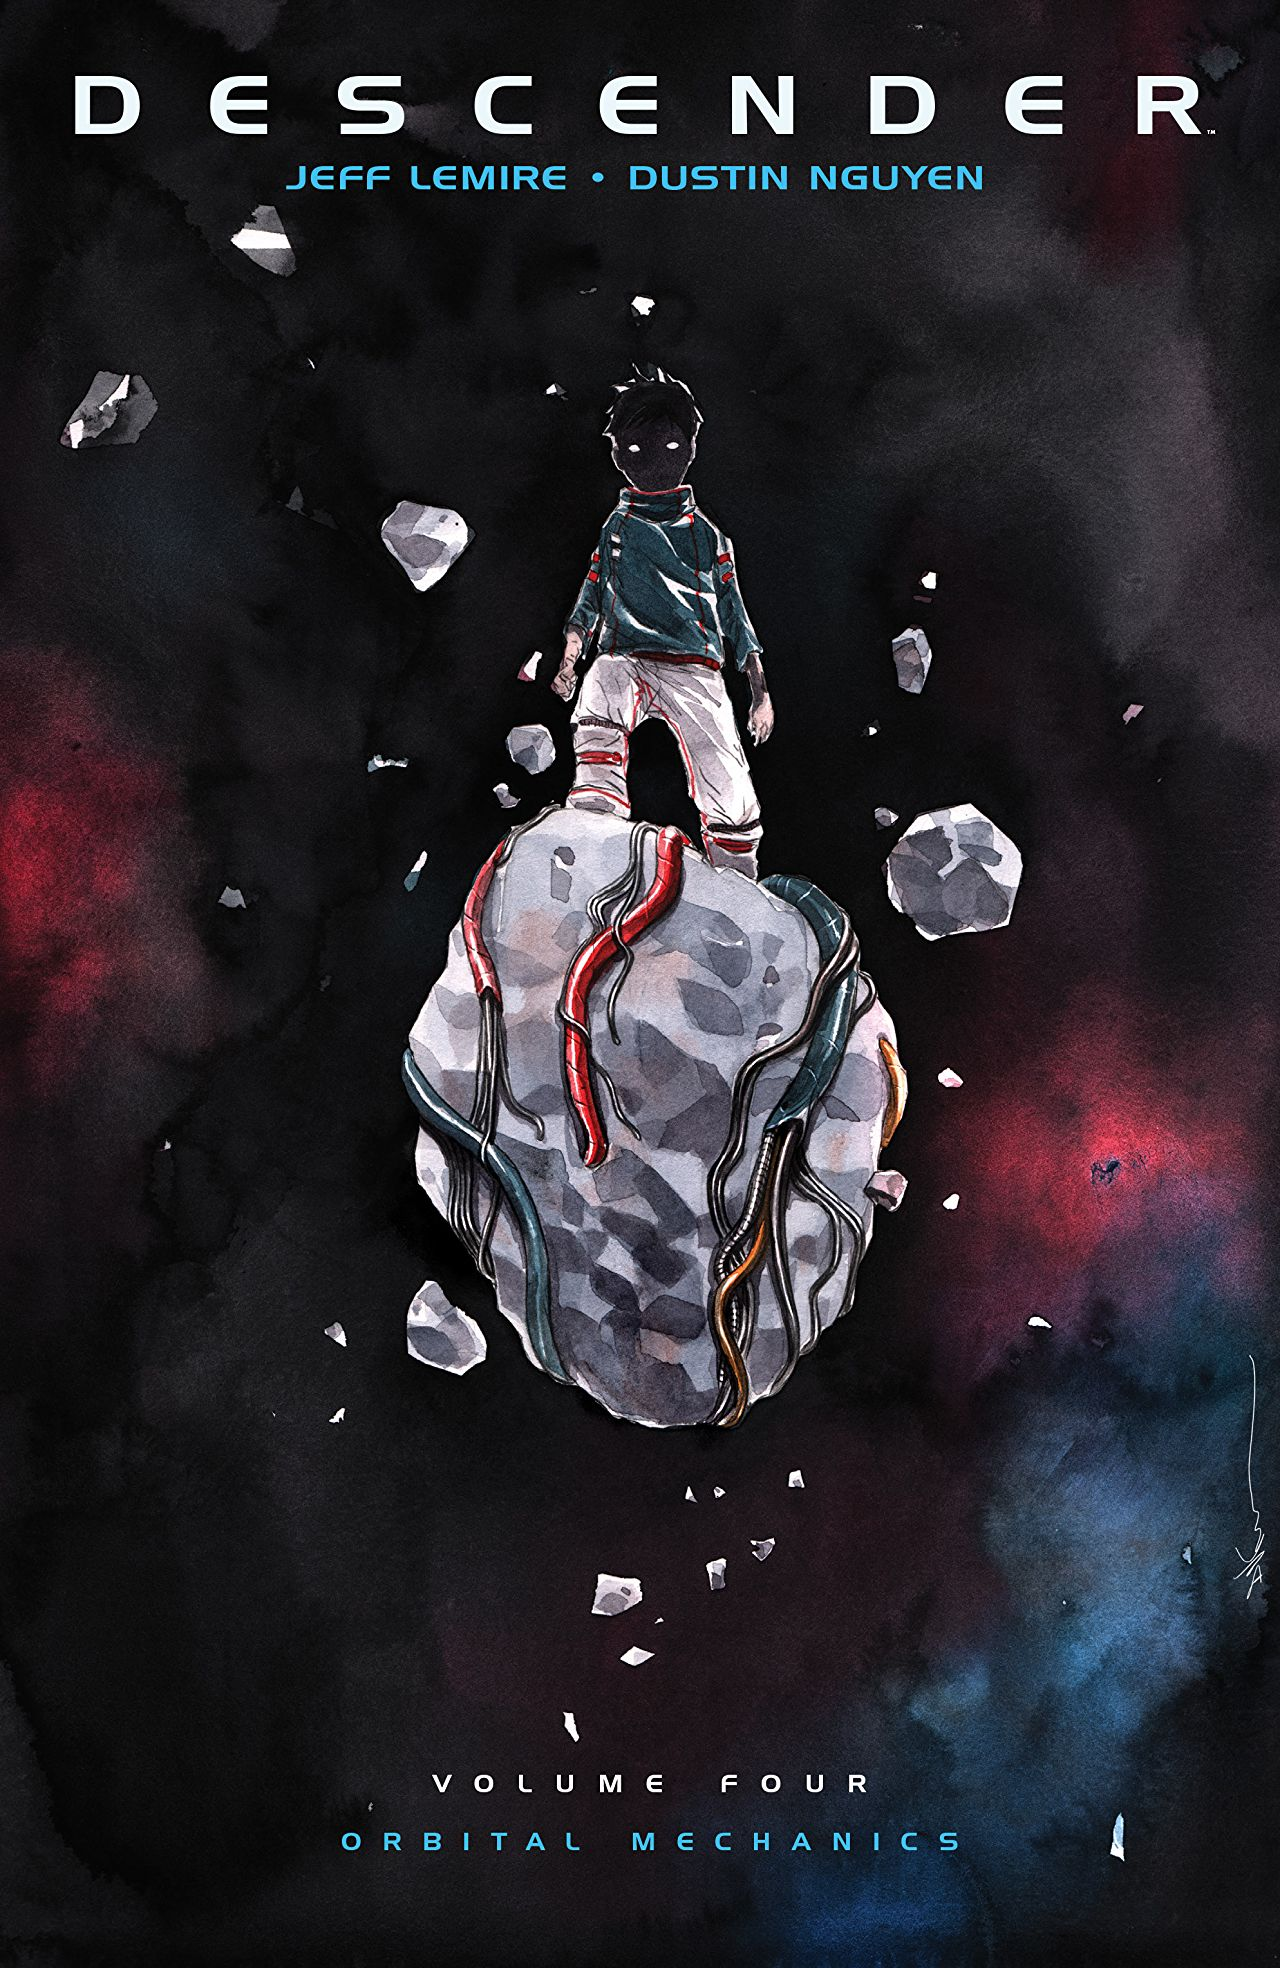 Descender Vol.